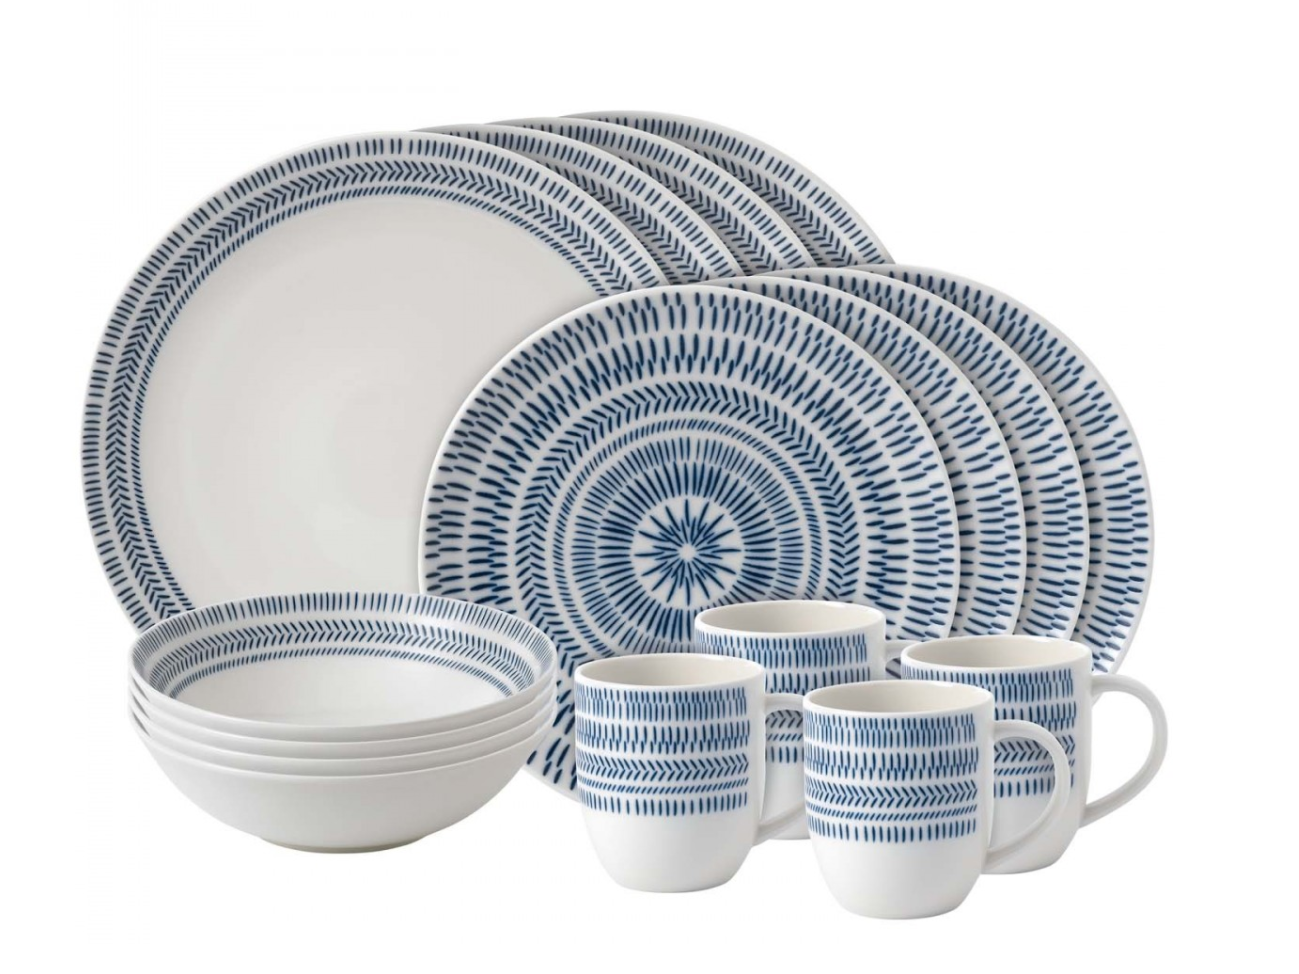 Ellen DeGeneres New Home Collections - Furniture Dishes